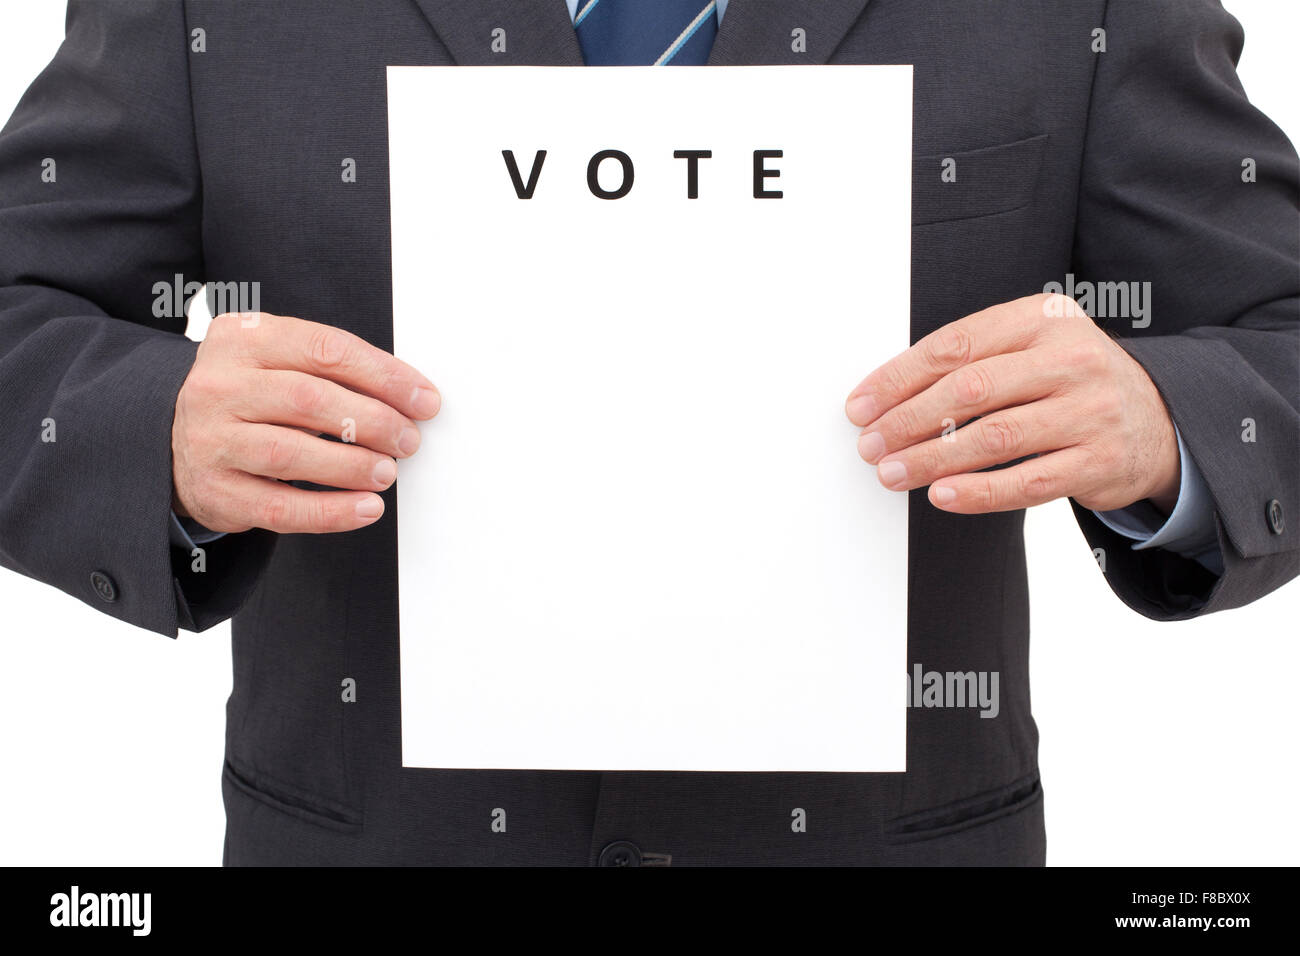 Man in suit, holding a white sheet with title VOTE in front of him. The image has been made in studio and isolated - Stock Image